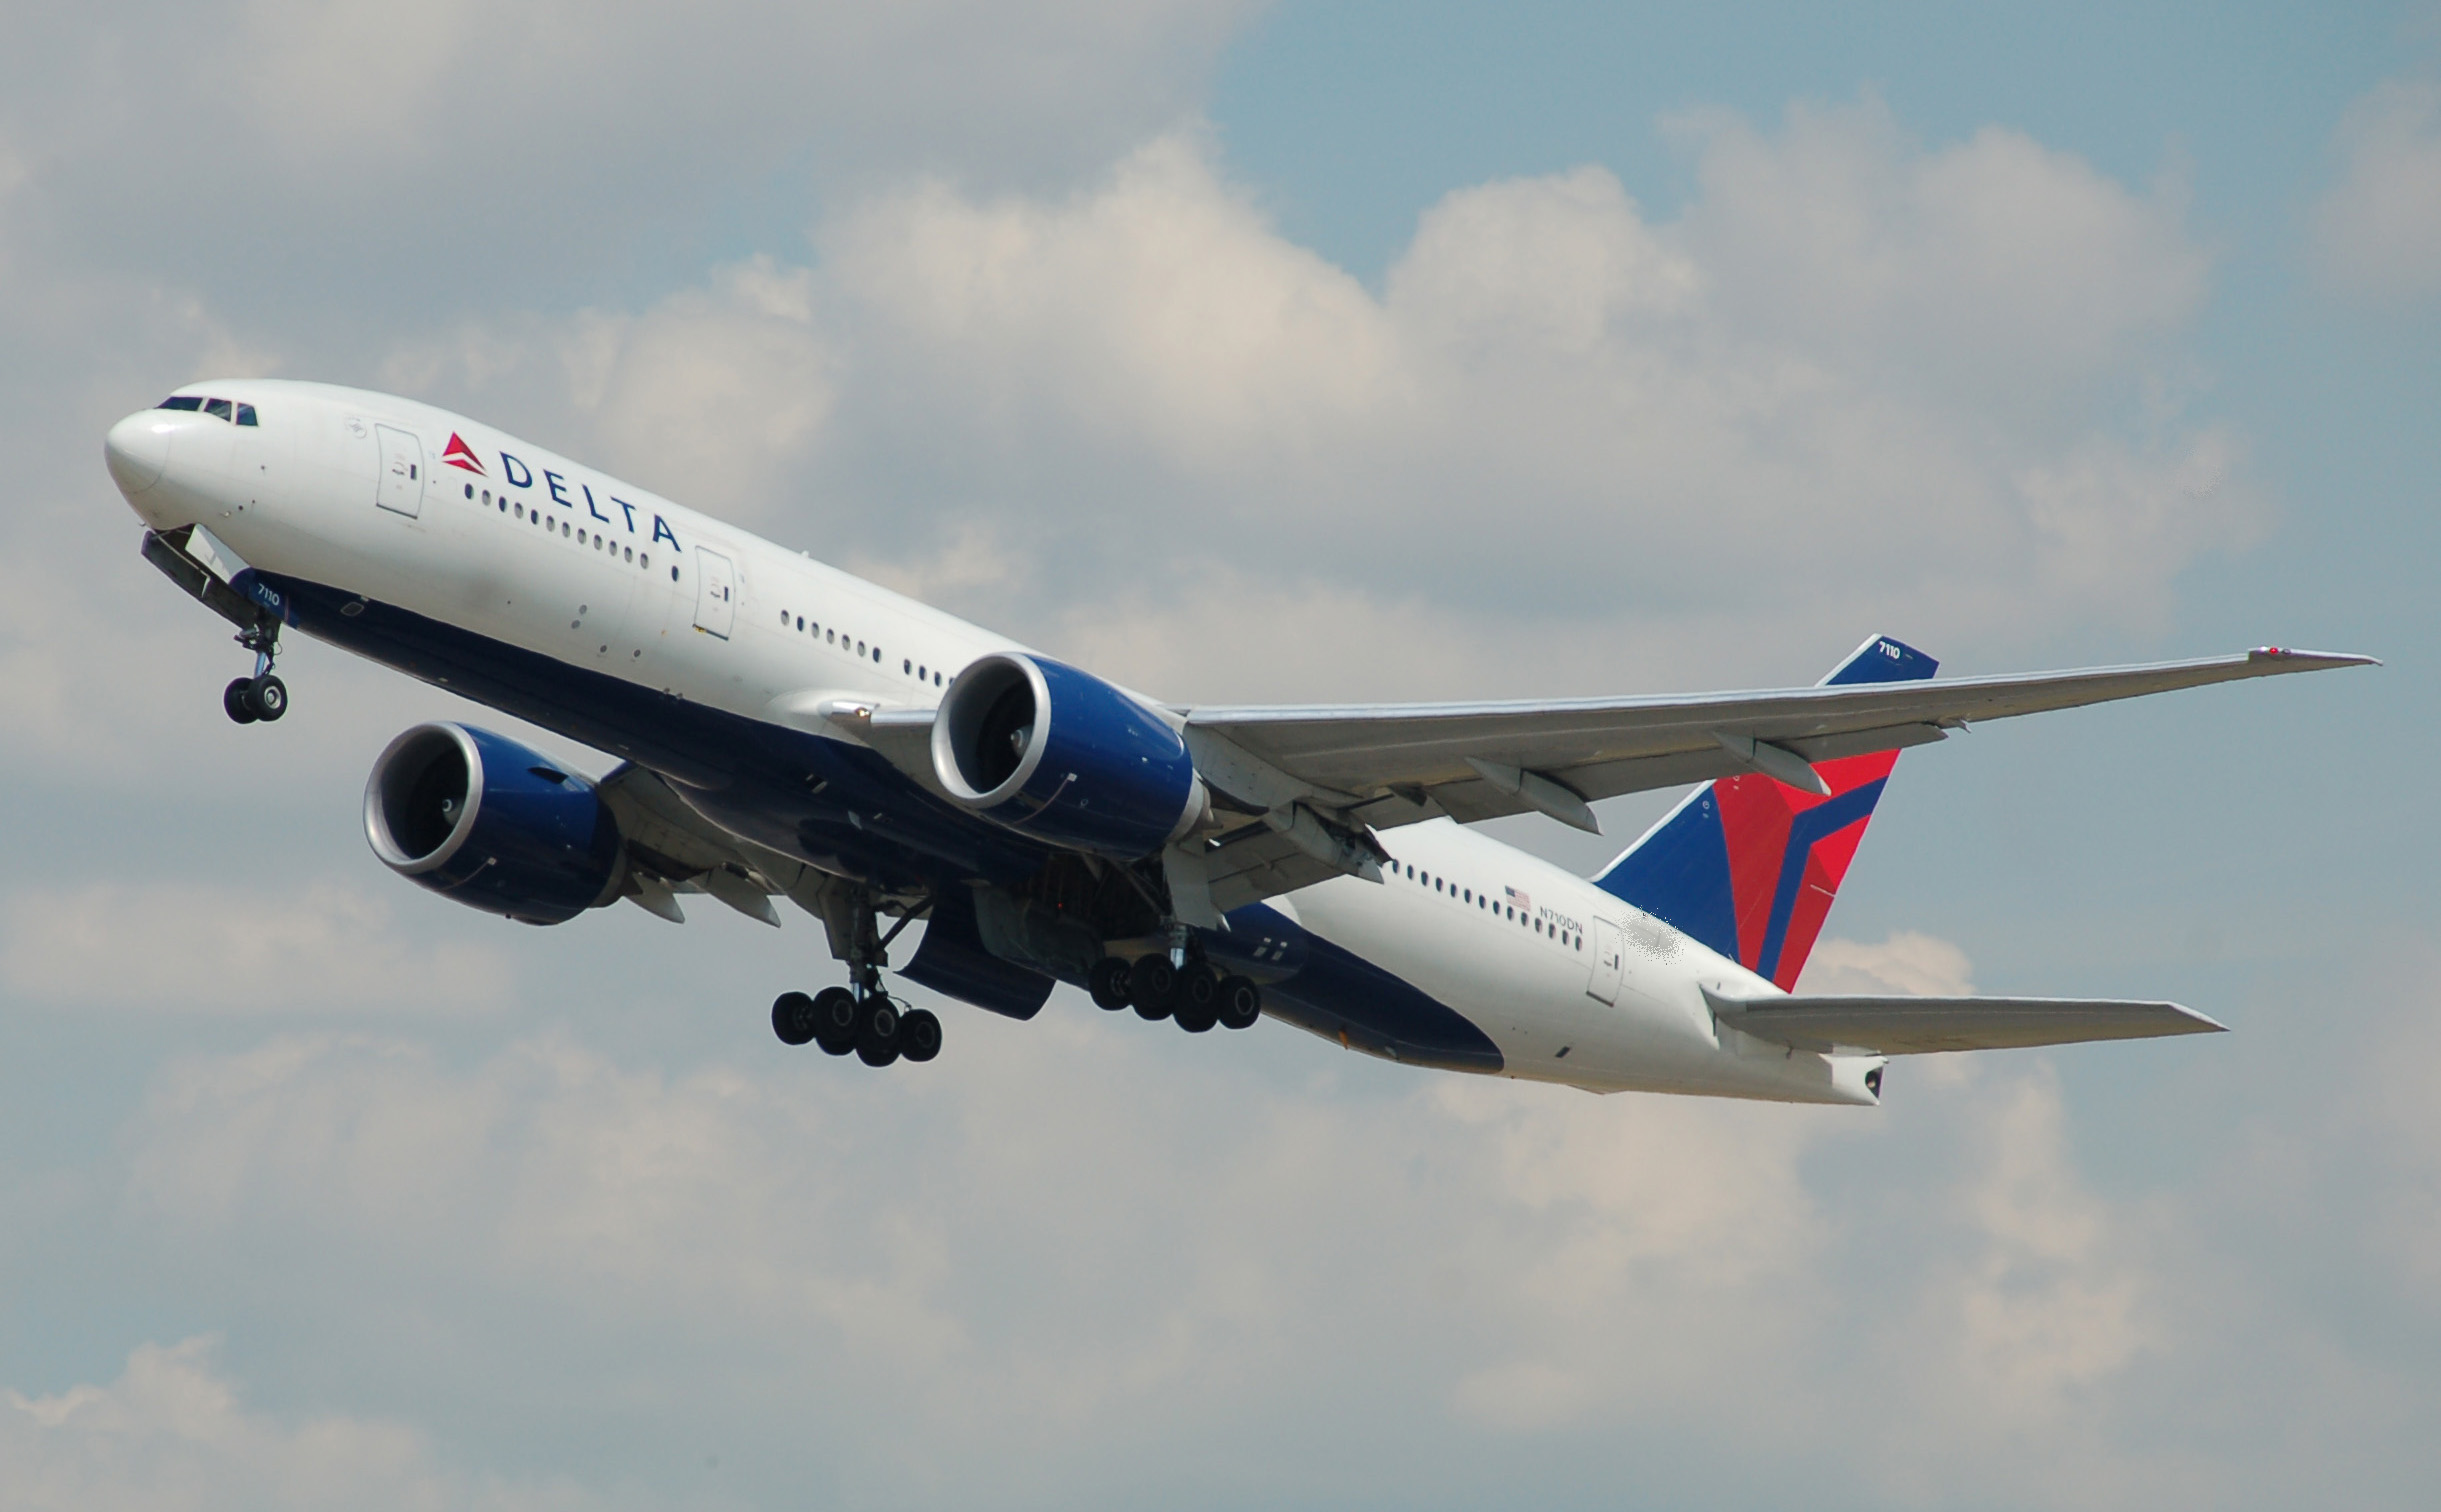 Delta_Air_Lines_Boeing_777-200LR_(N710DN)_departs_London_Heathrow_Airport_2ndJuly2014_arp